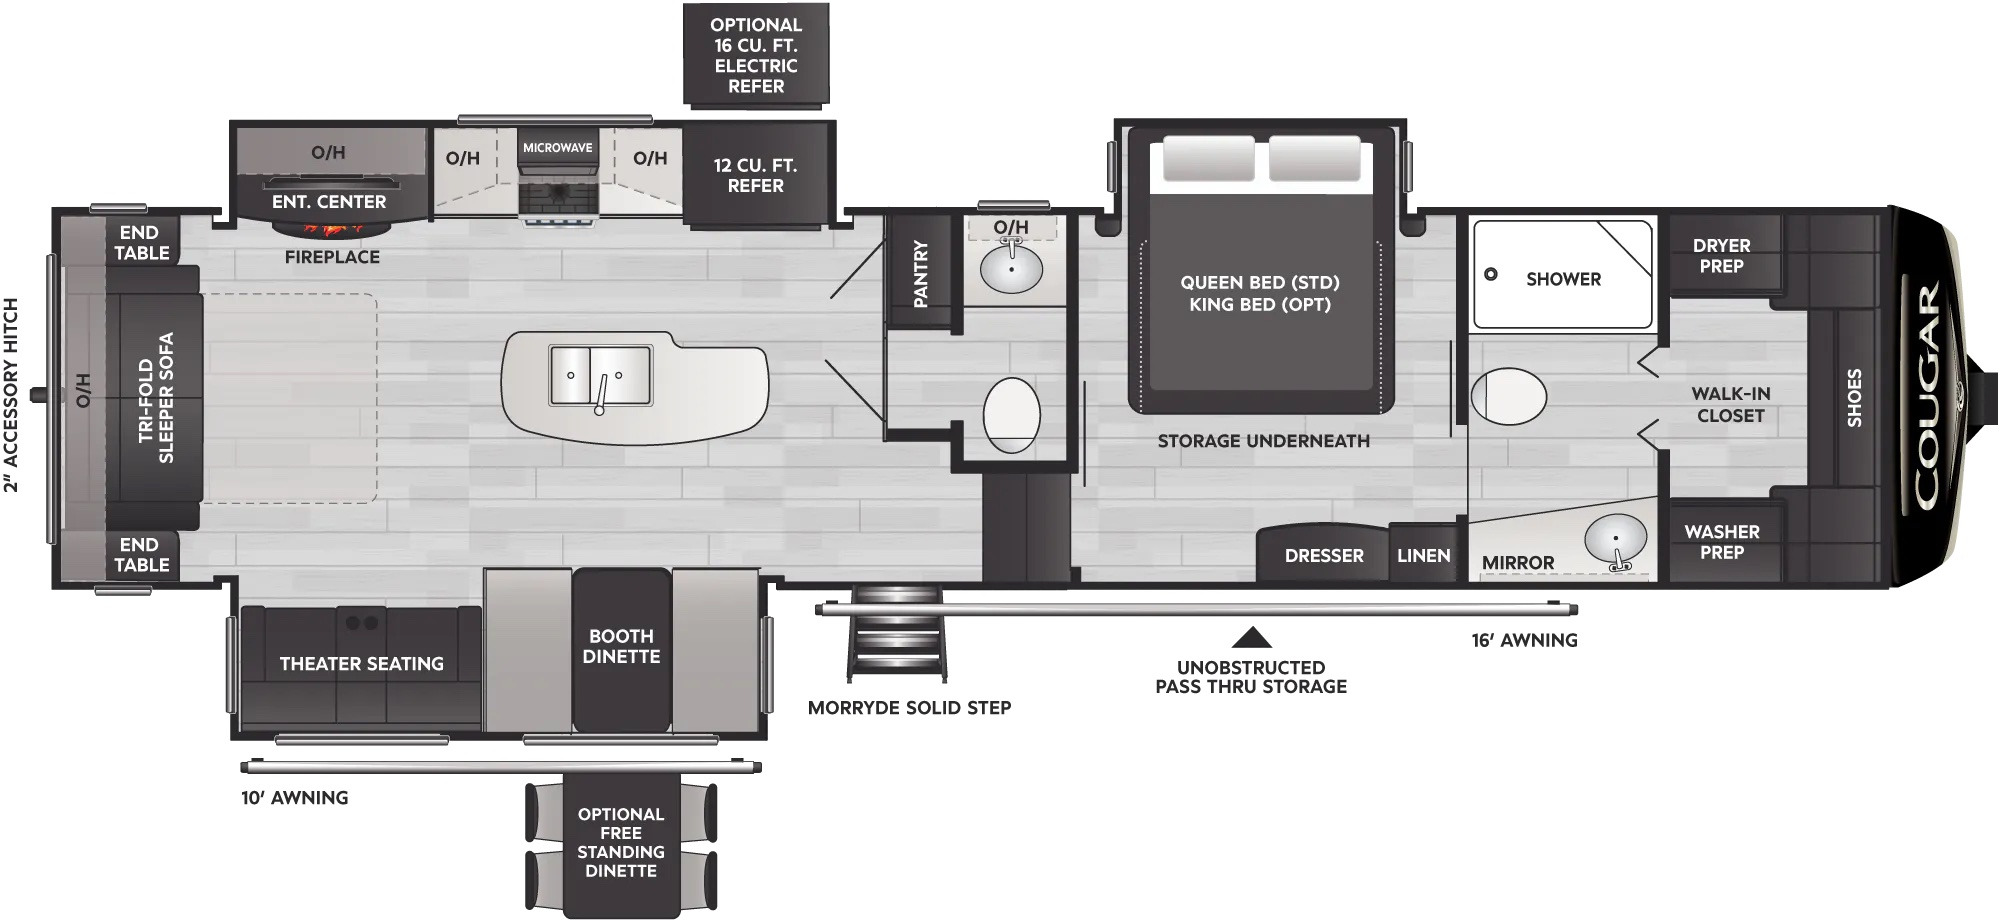 View Floor Plan for 2022 KEYSTONE COUGAR 355FBS